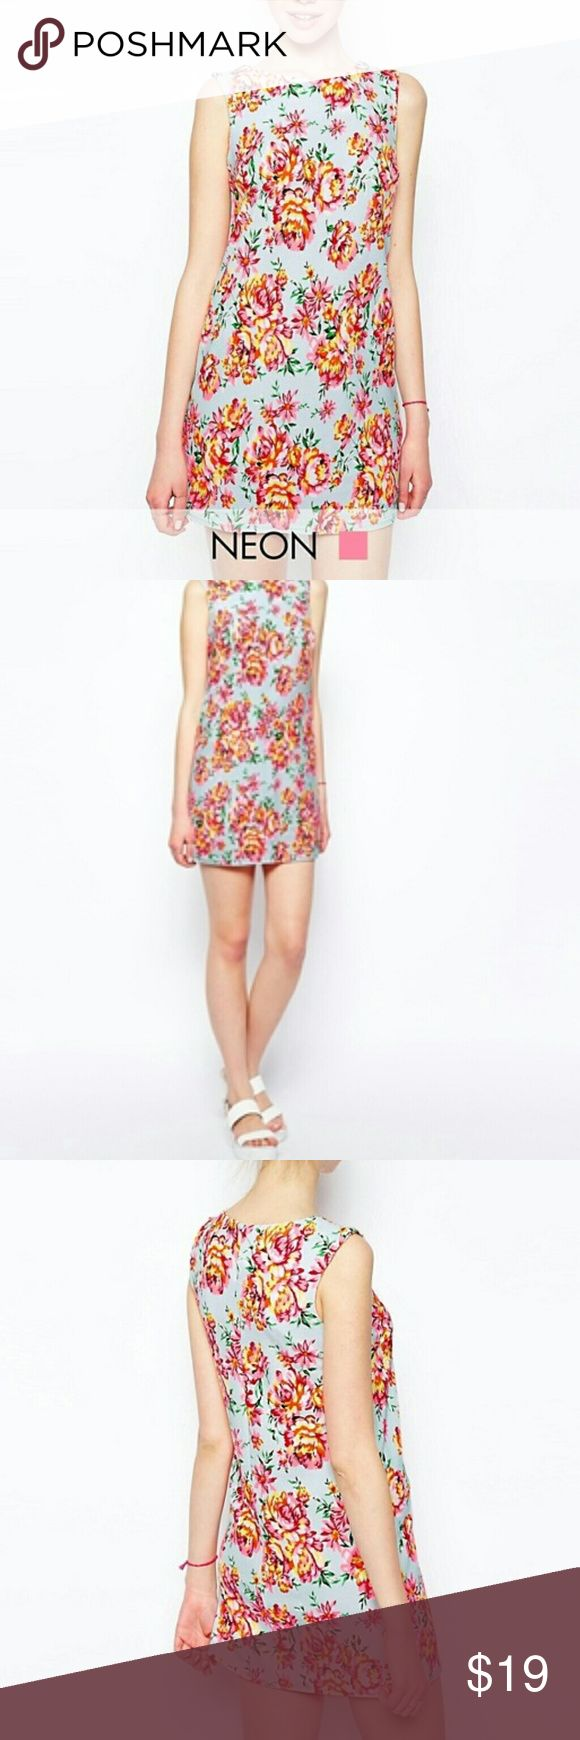 ❤ ASOS New Look Neon Floral Tunic Dress - UK Size 10= US Size 6  - Keyhole back.  - 95% Polyester. 5% Elastane.  - Worn one time. New Look Dresses